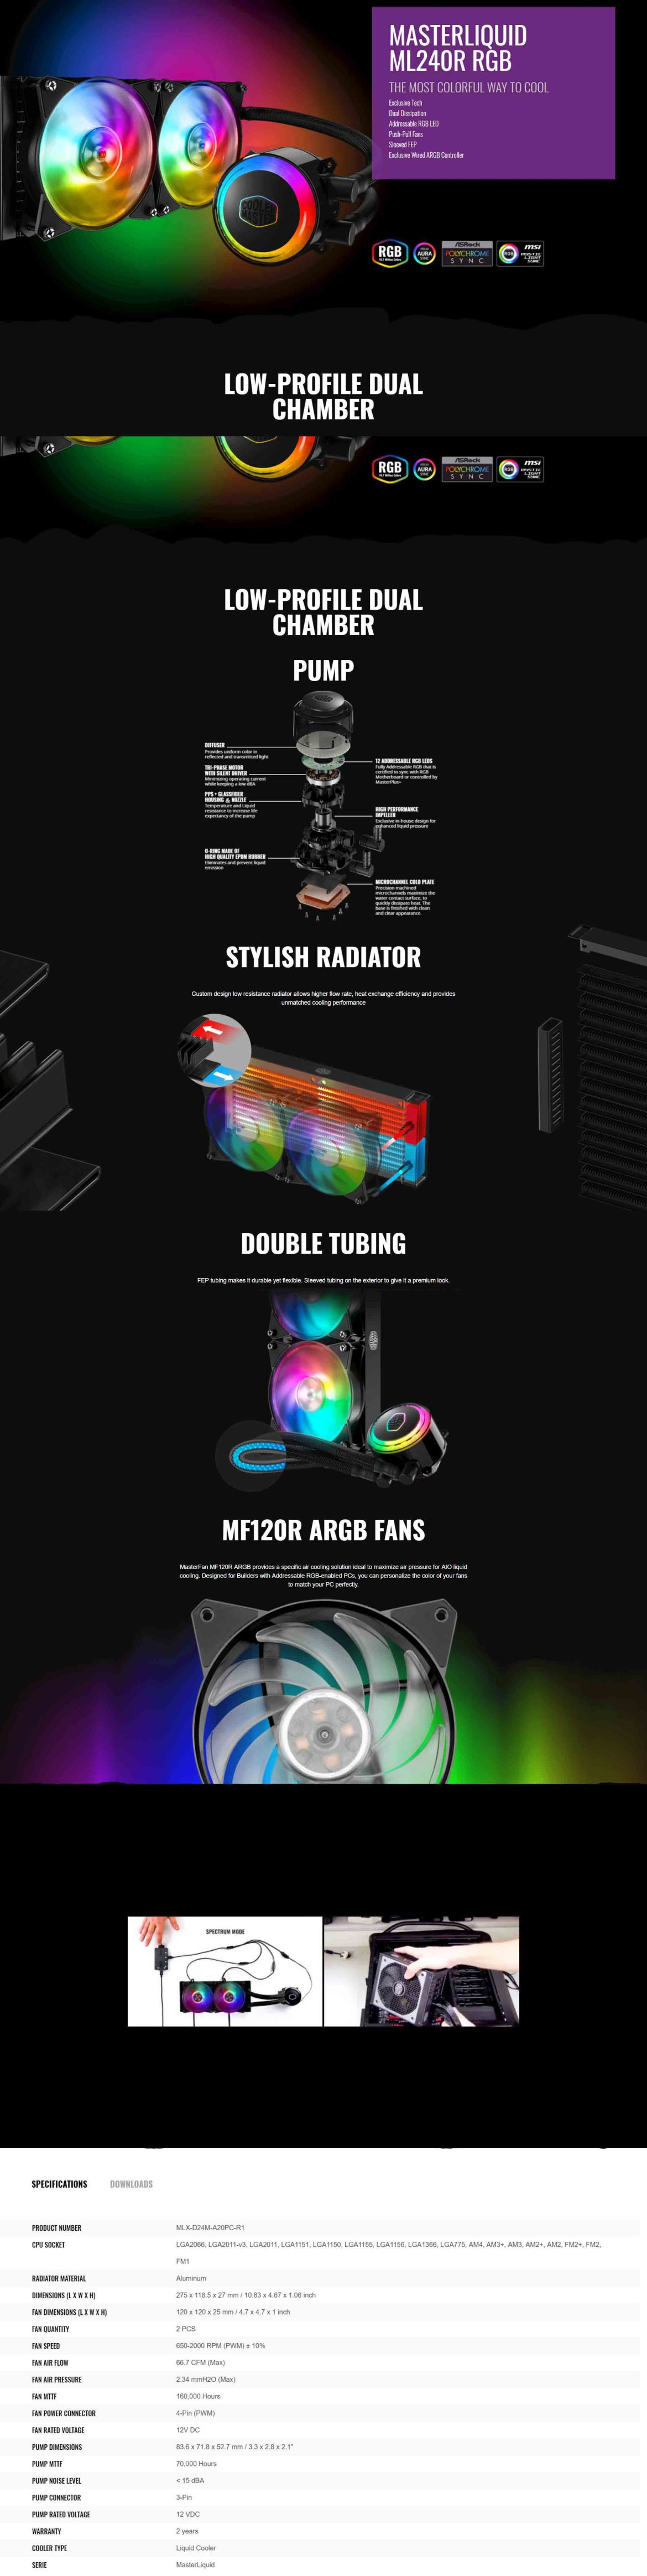 Cooler Master MasterLiquid ML240R RGB CPU Liquid Cooler - Product No:  MLX-D24M-A20PC-R1